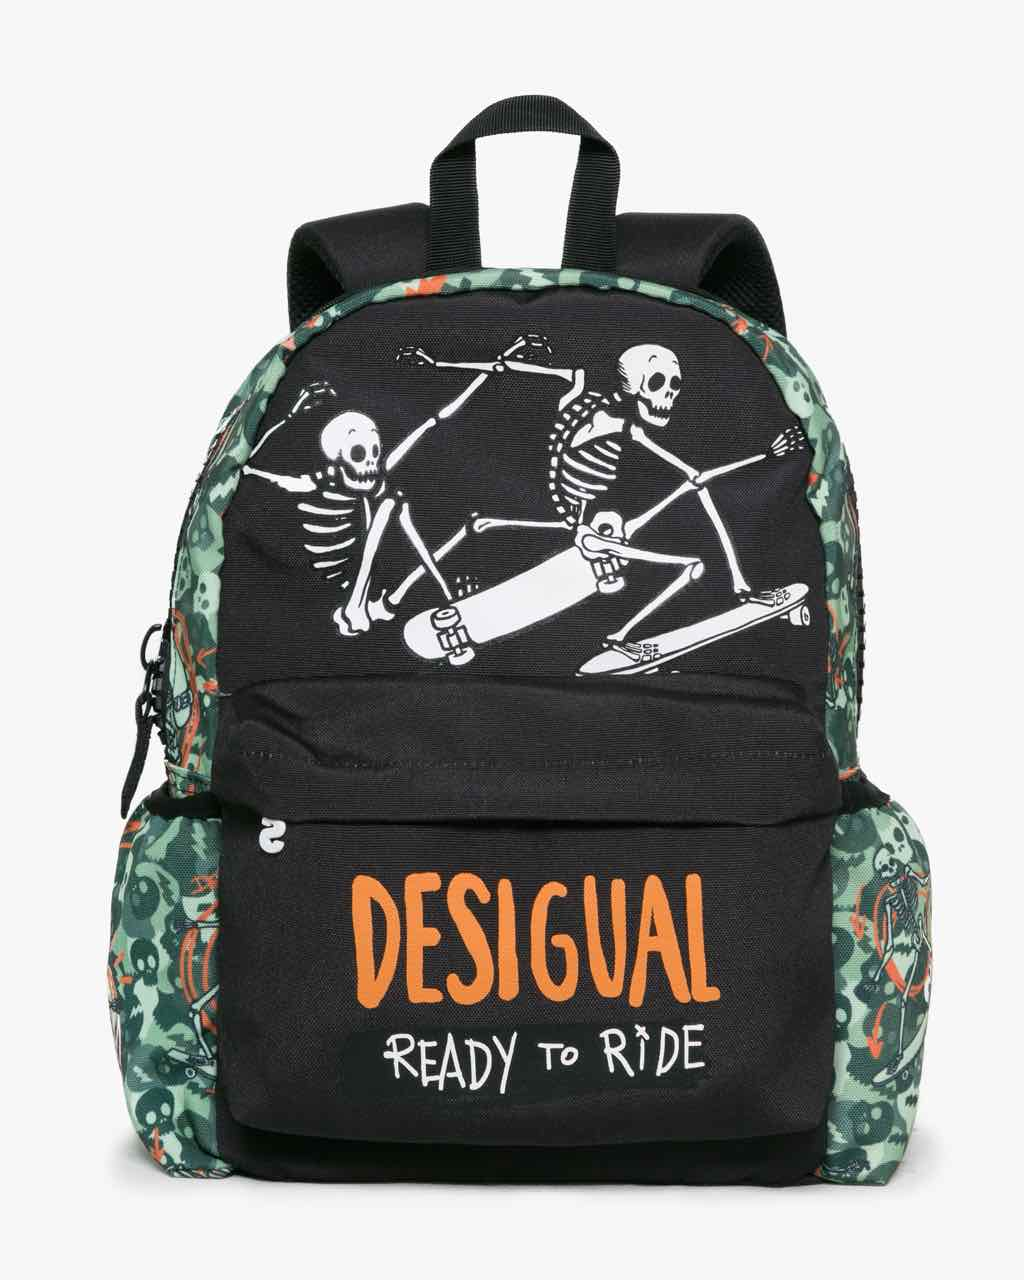 17WBXW01_2000 Desigual Boys Backpack Break Buy Online